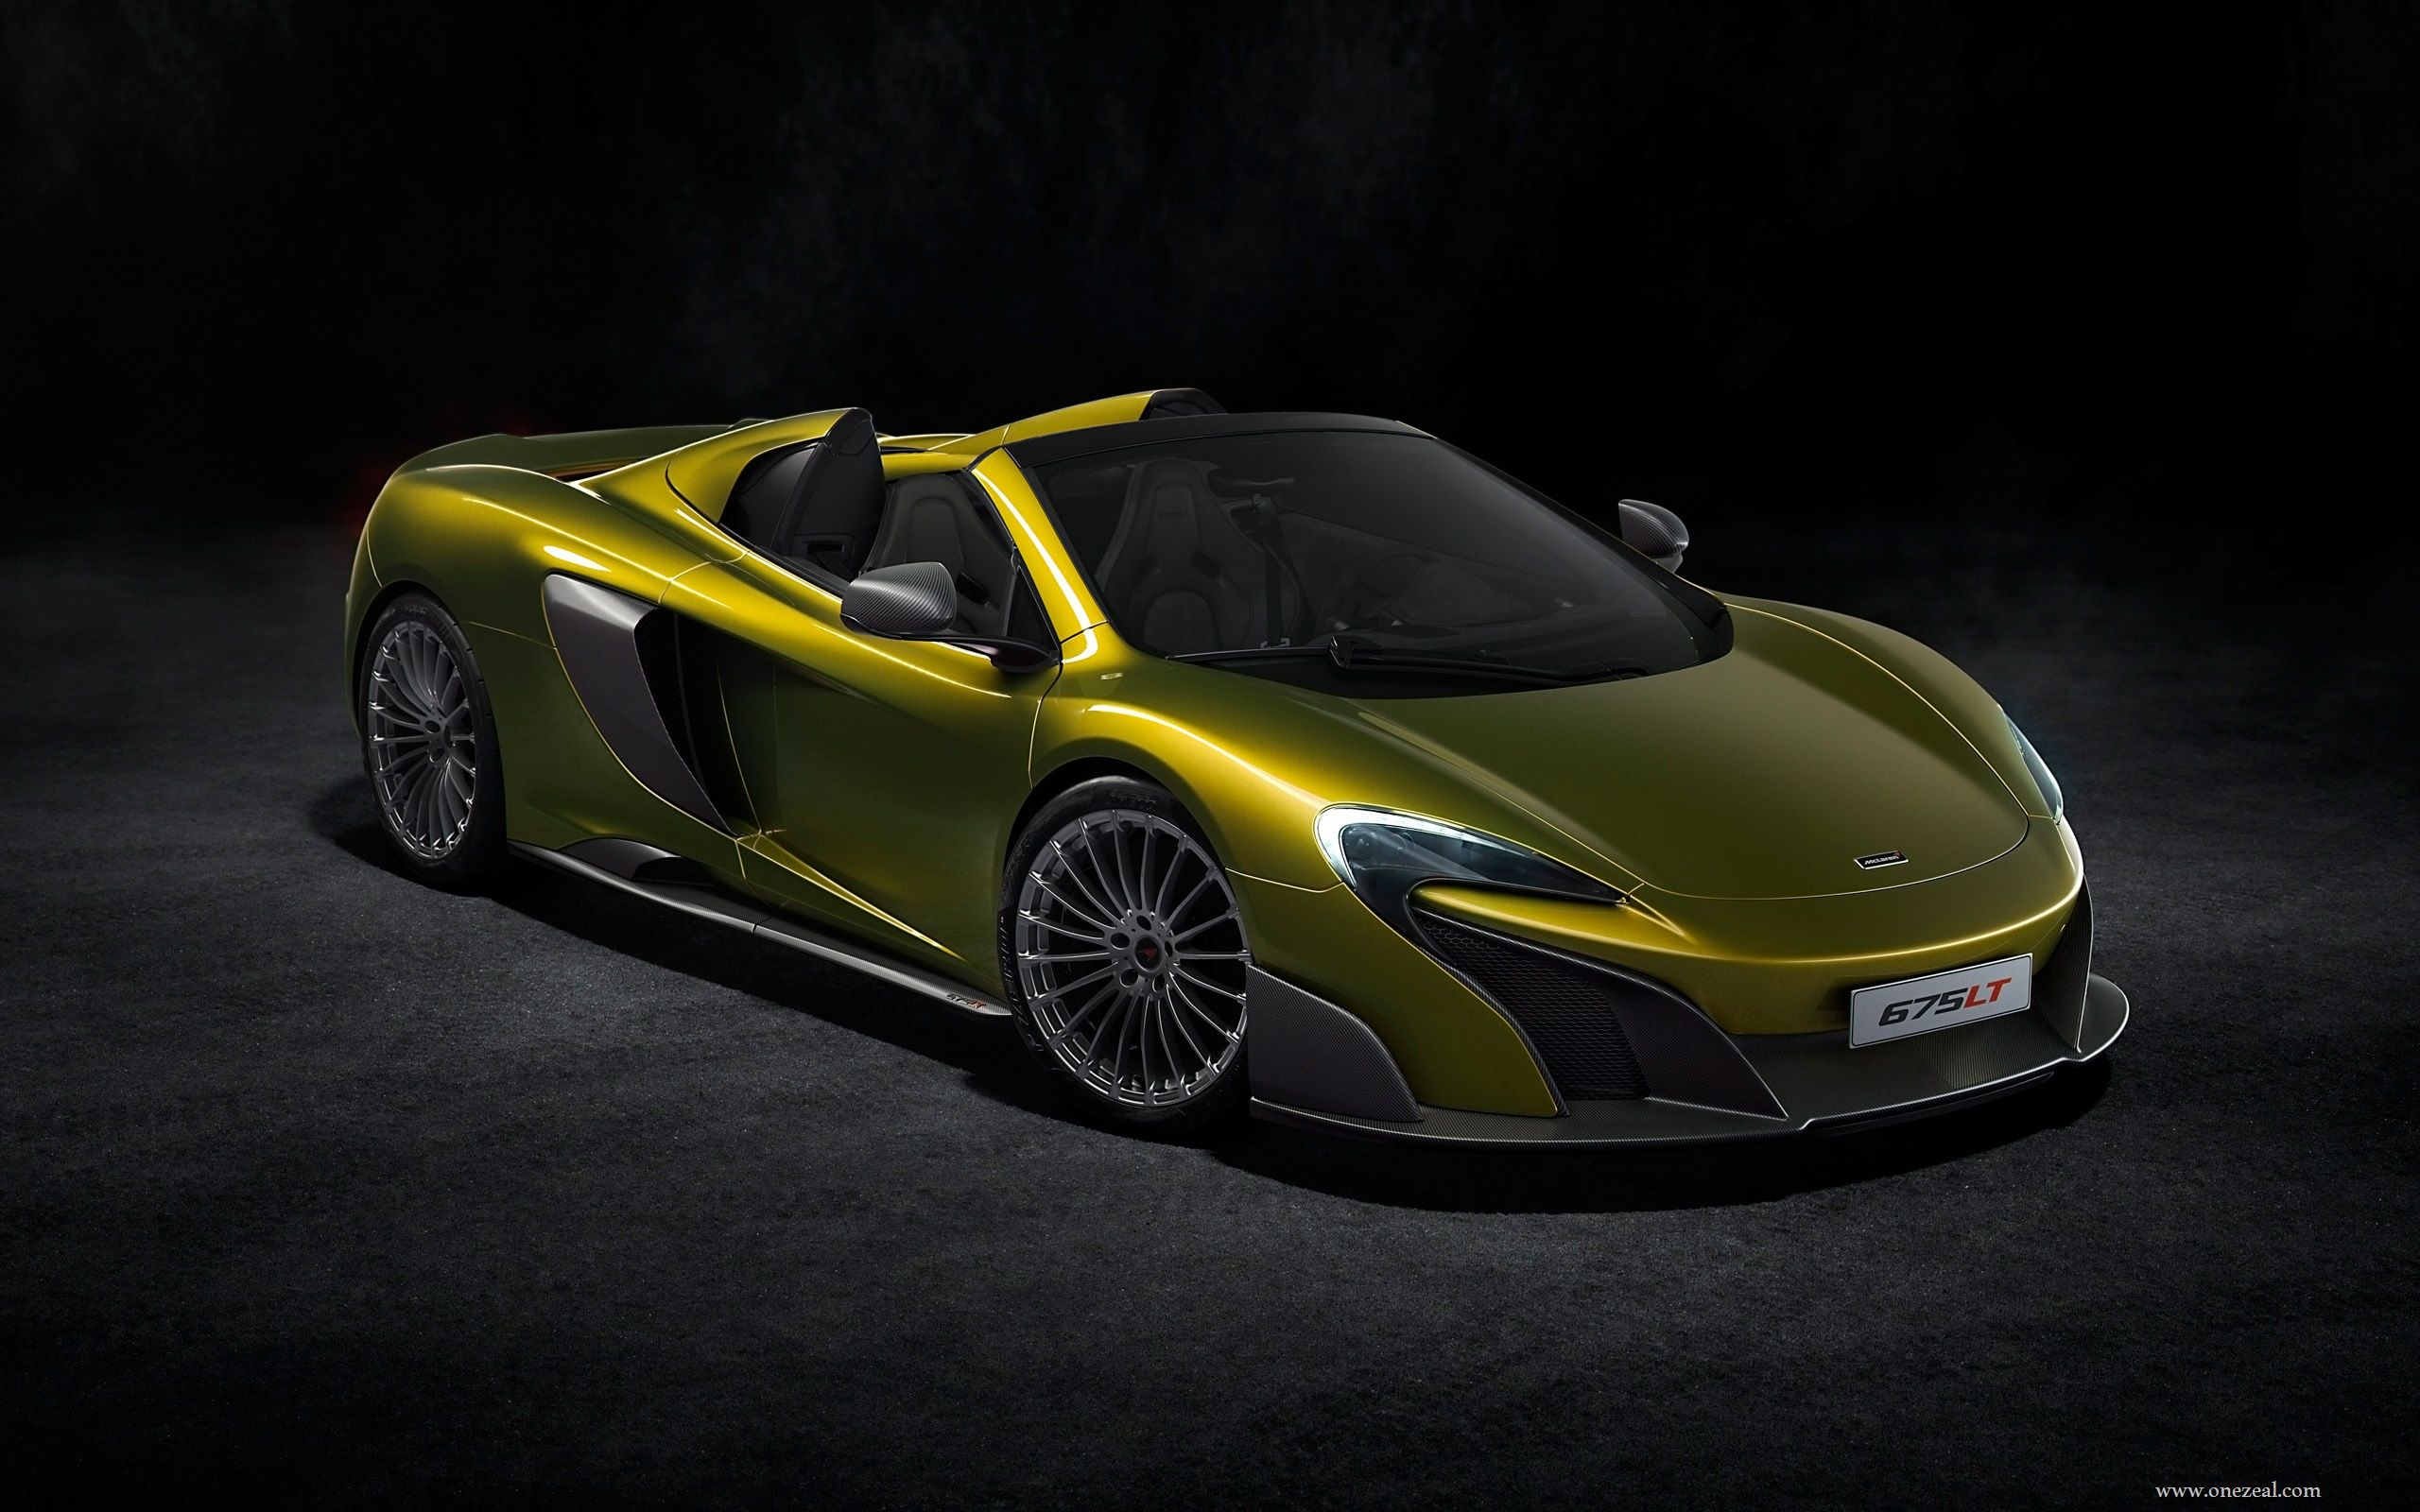 Hd Mclaren 675lt Spider Car 2016 Wallpapers For Your Desktop Mobiles Tablets In High Quality